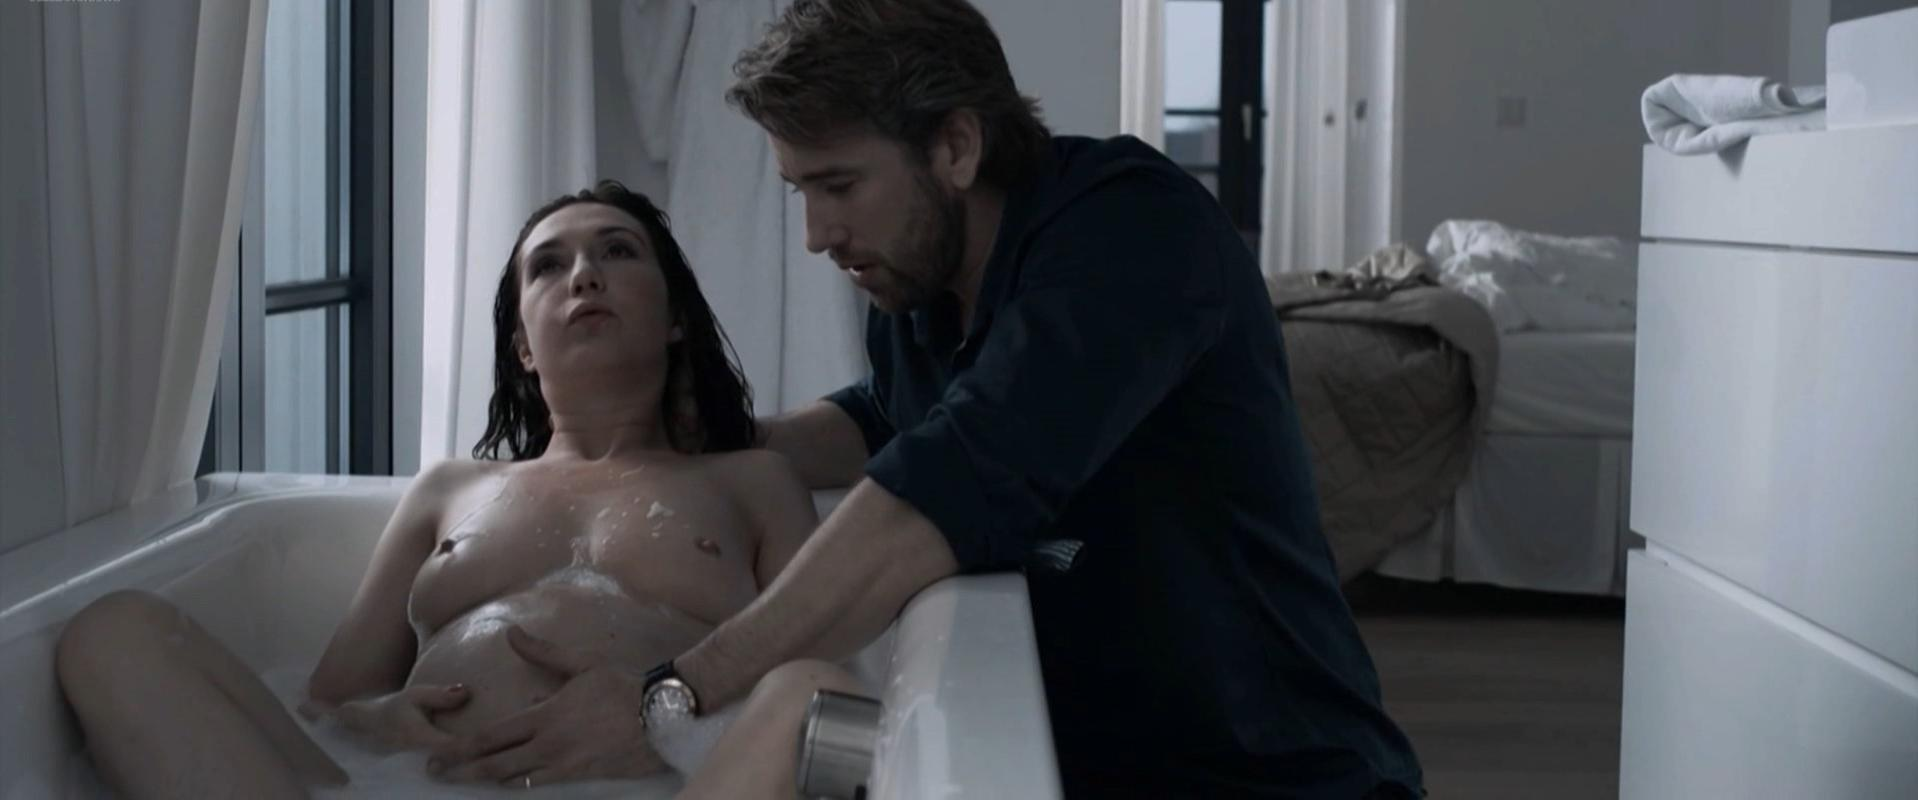 Carice van Houten nude - The Happy Housewife (2010)